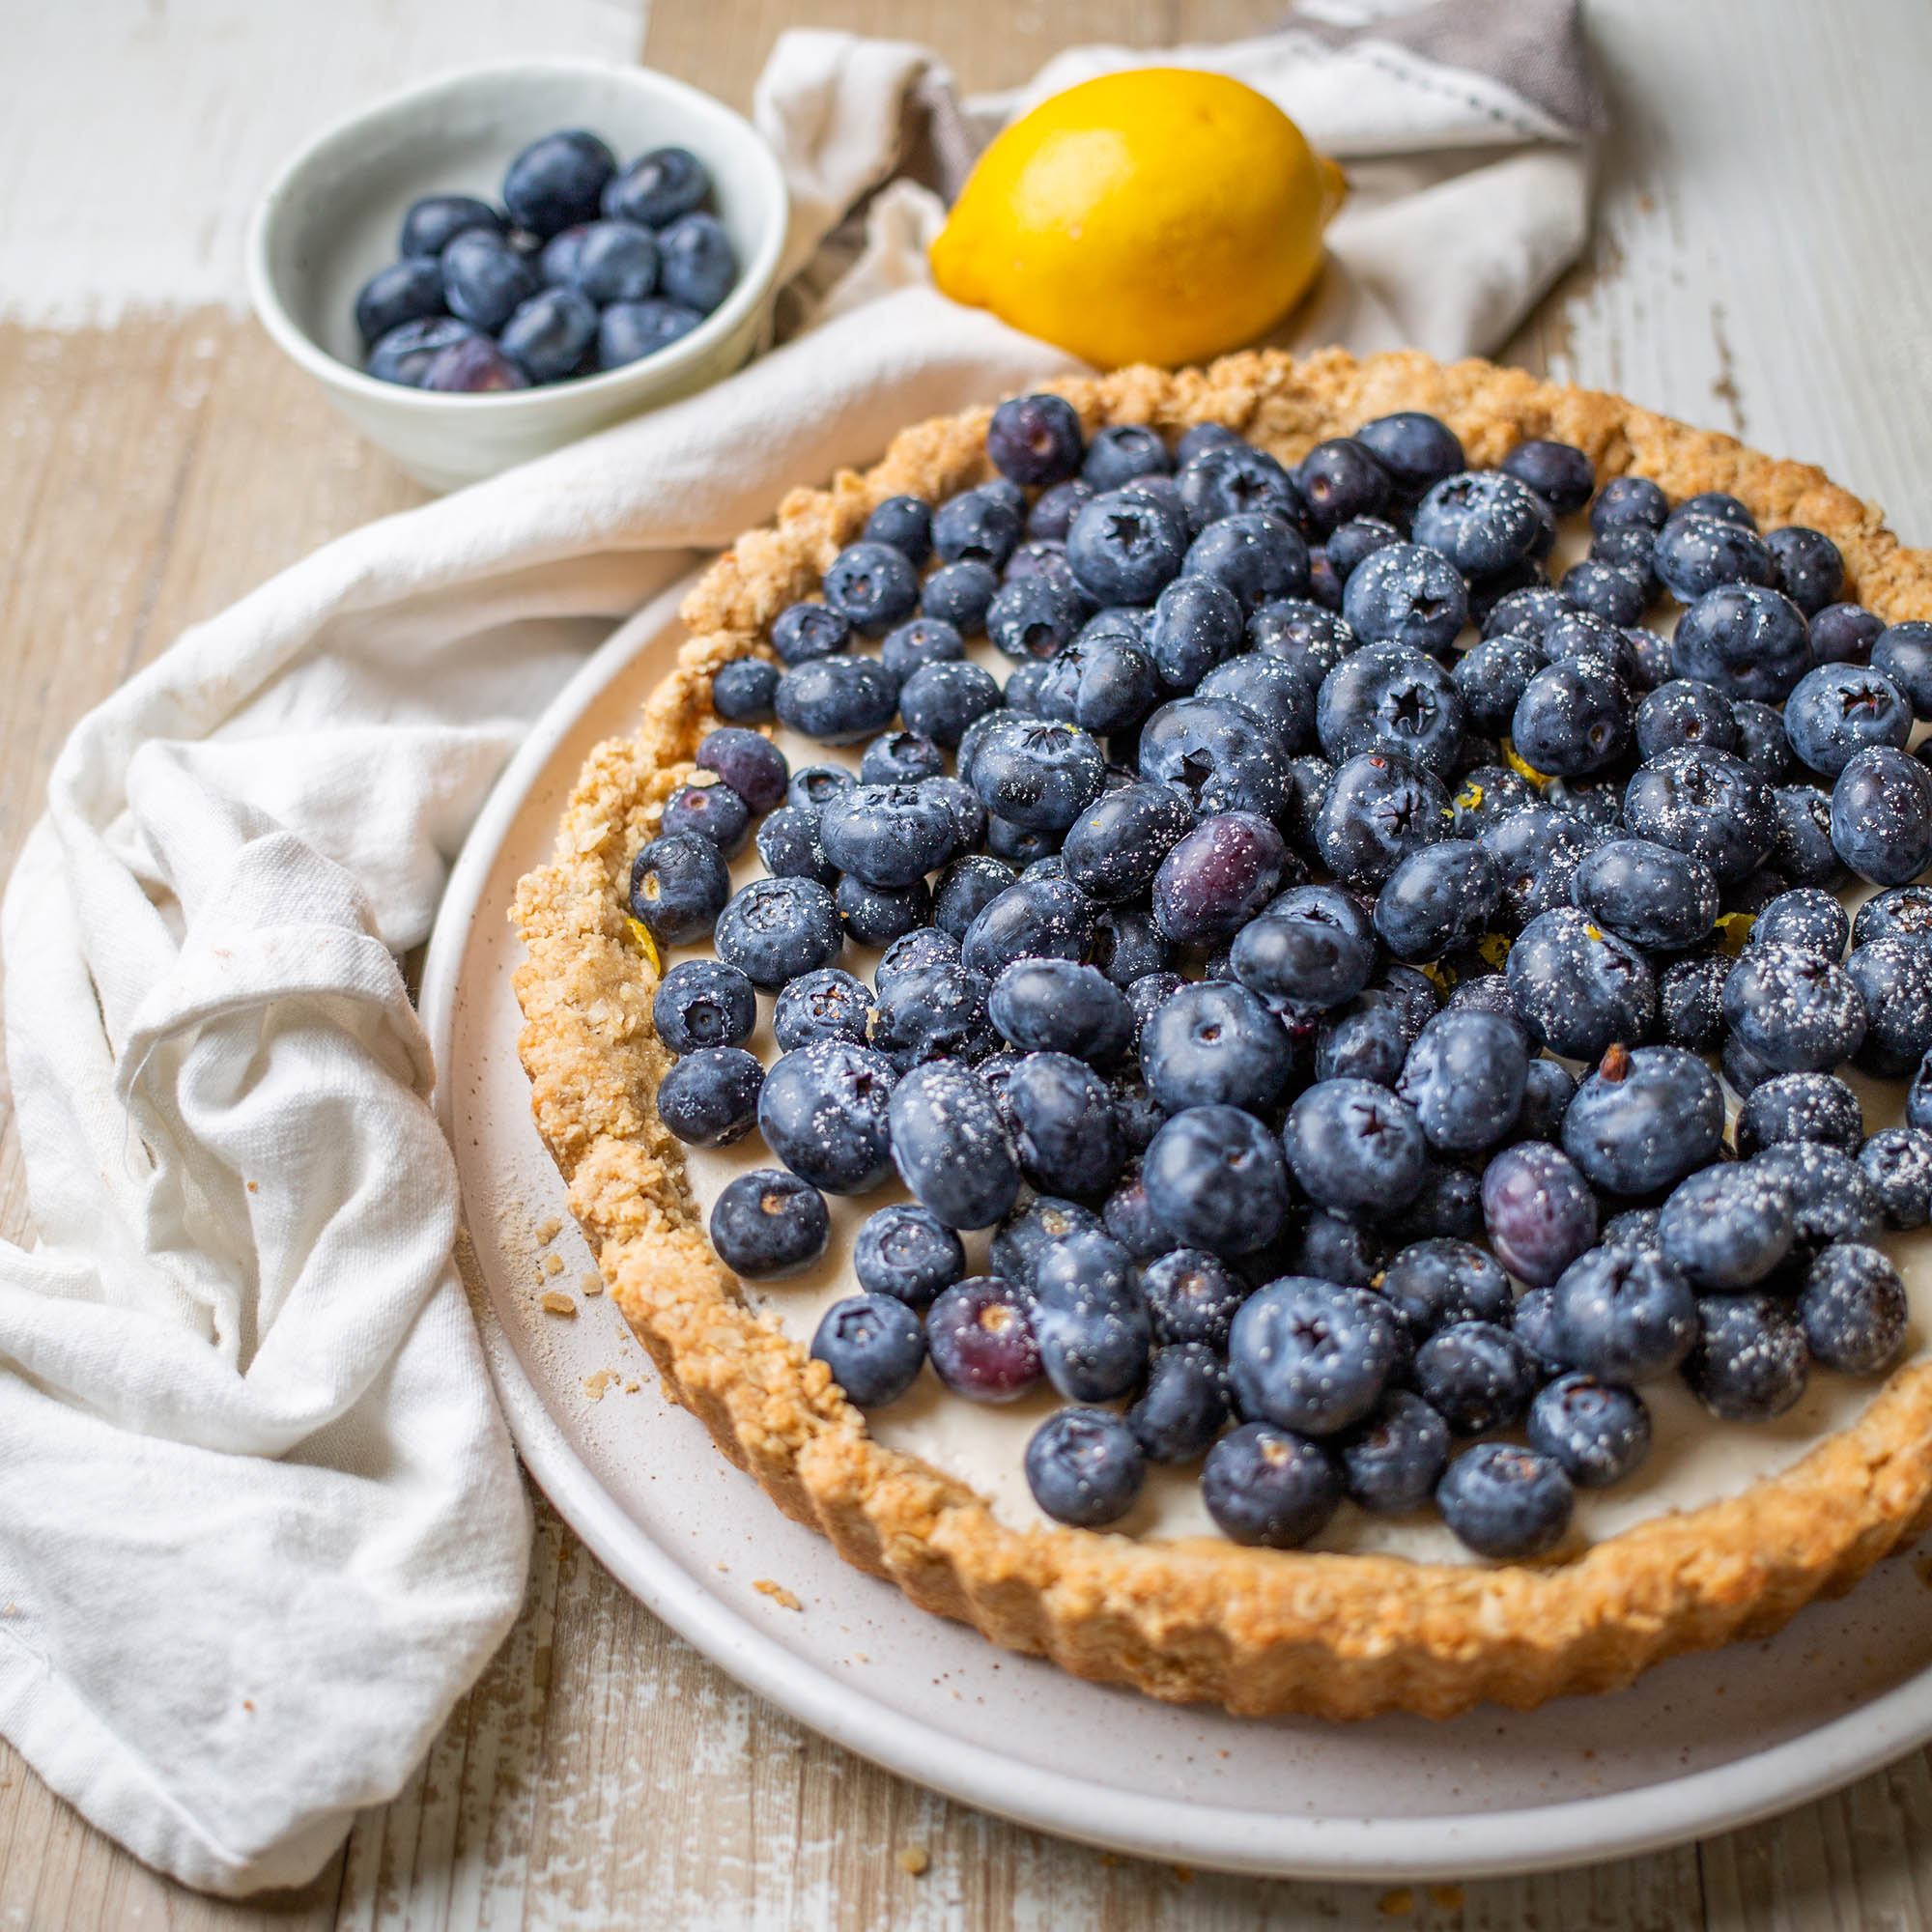 Vegan Blueberry Lemon Custard Tart